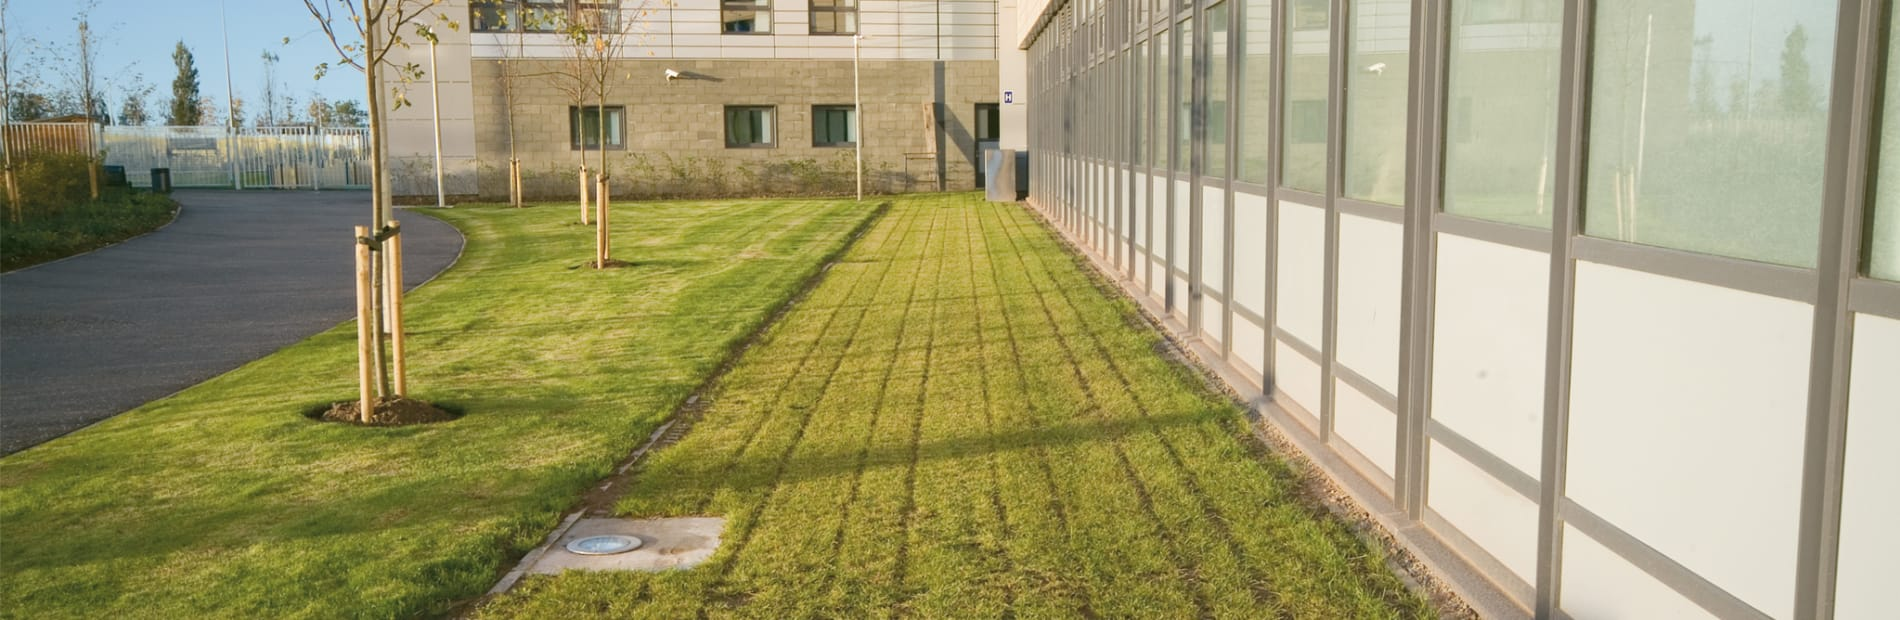 marshalls grassguard edinburgh